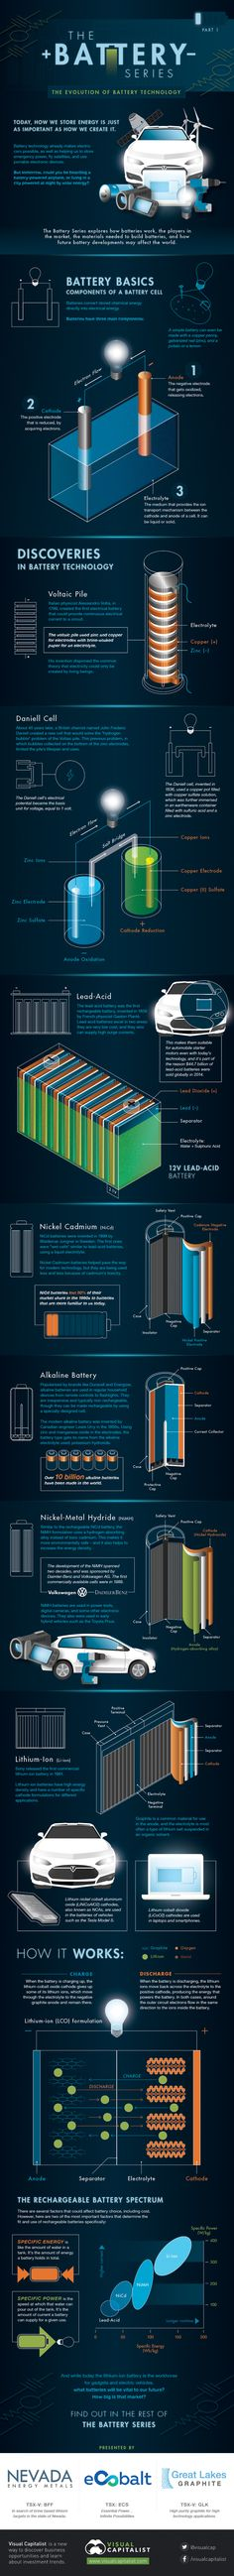 The Battery Series: The Evolution of Battery Technology